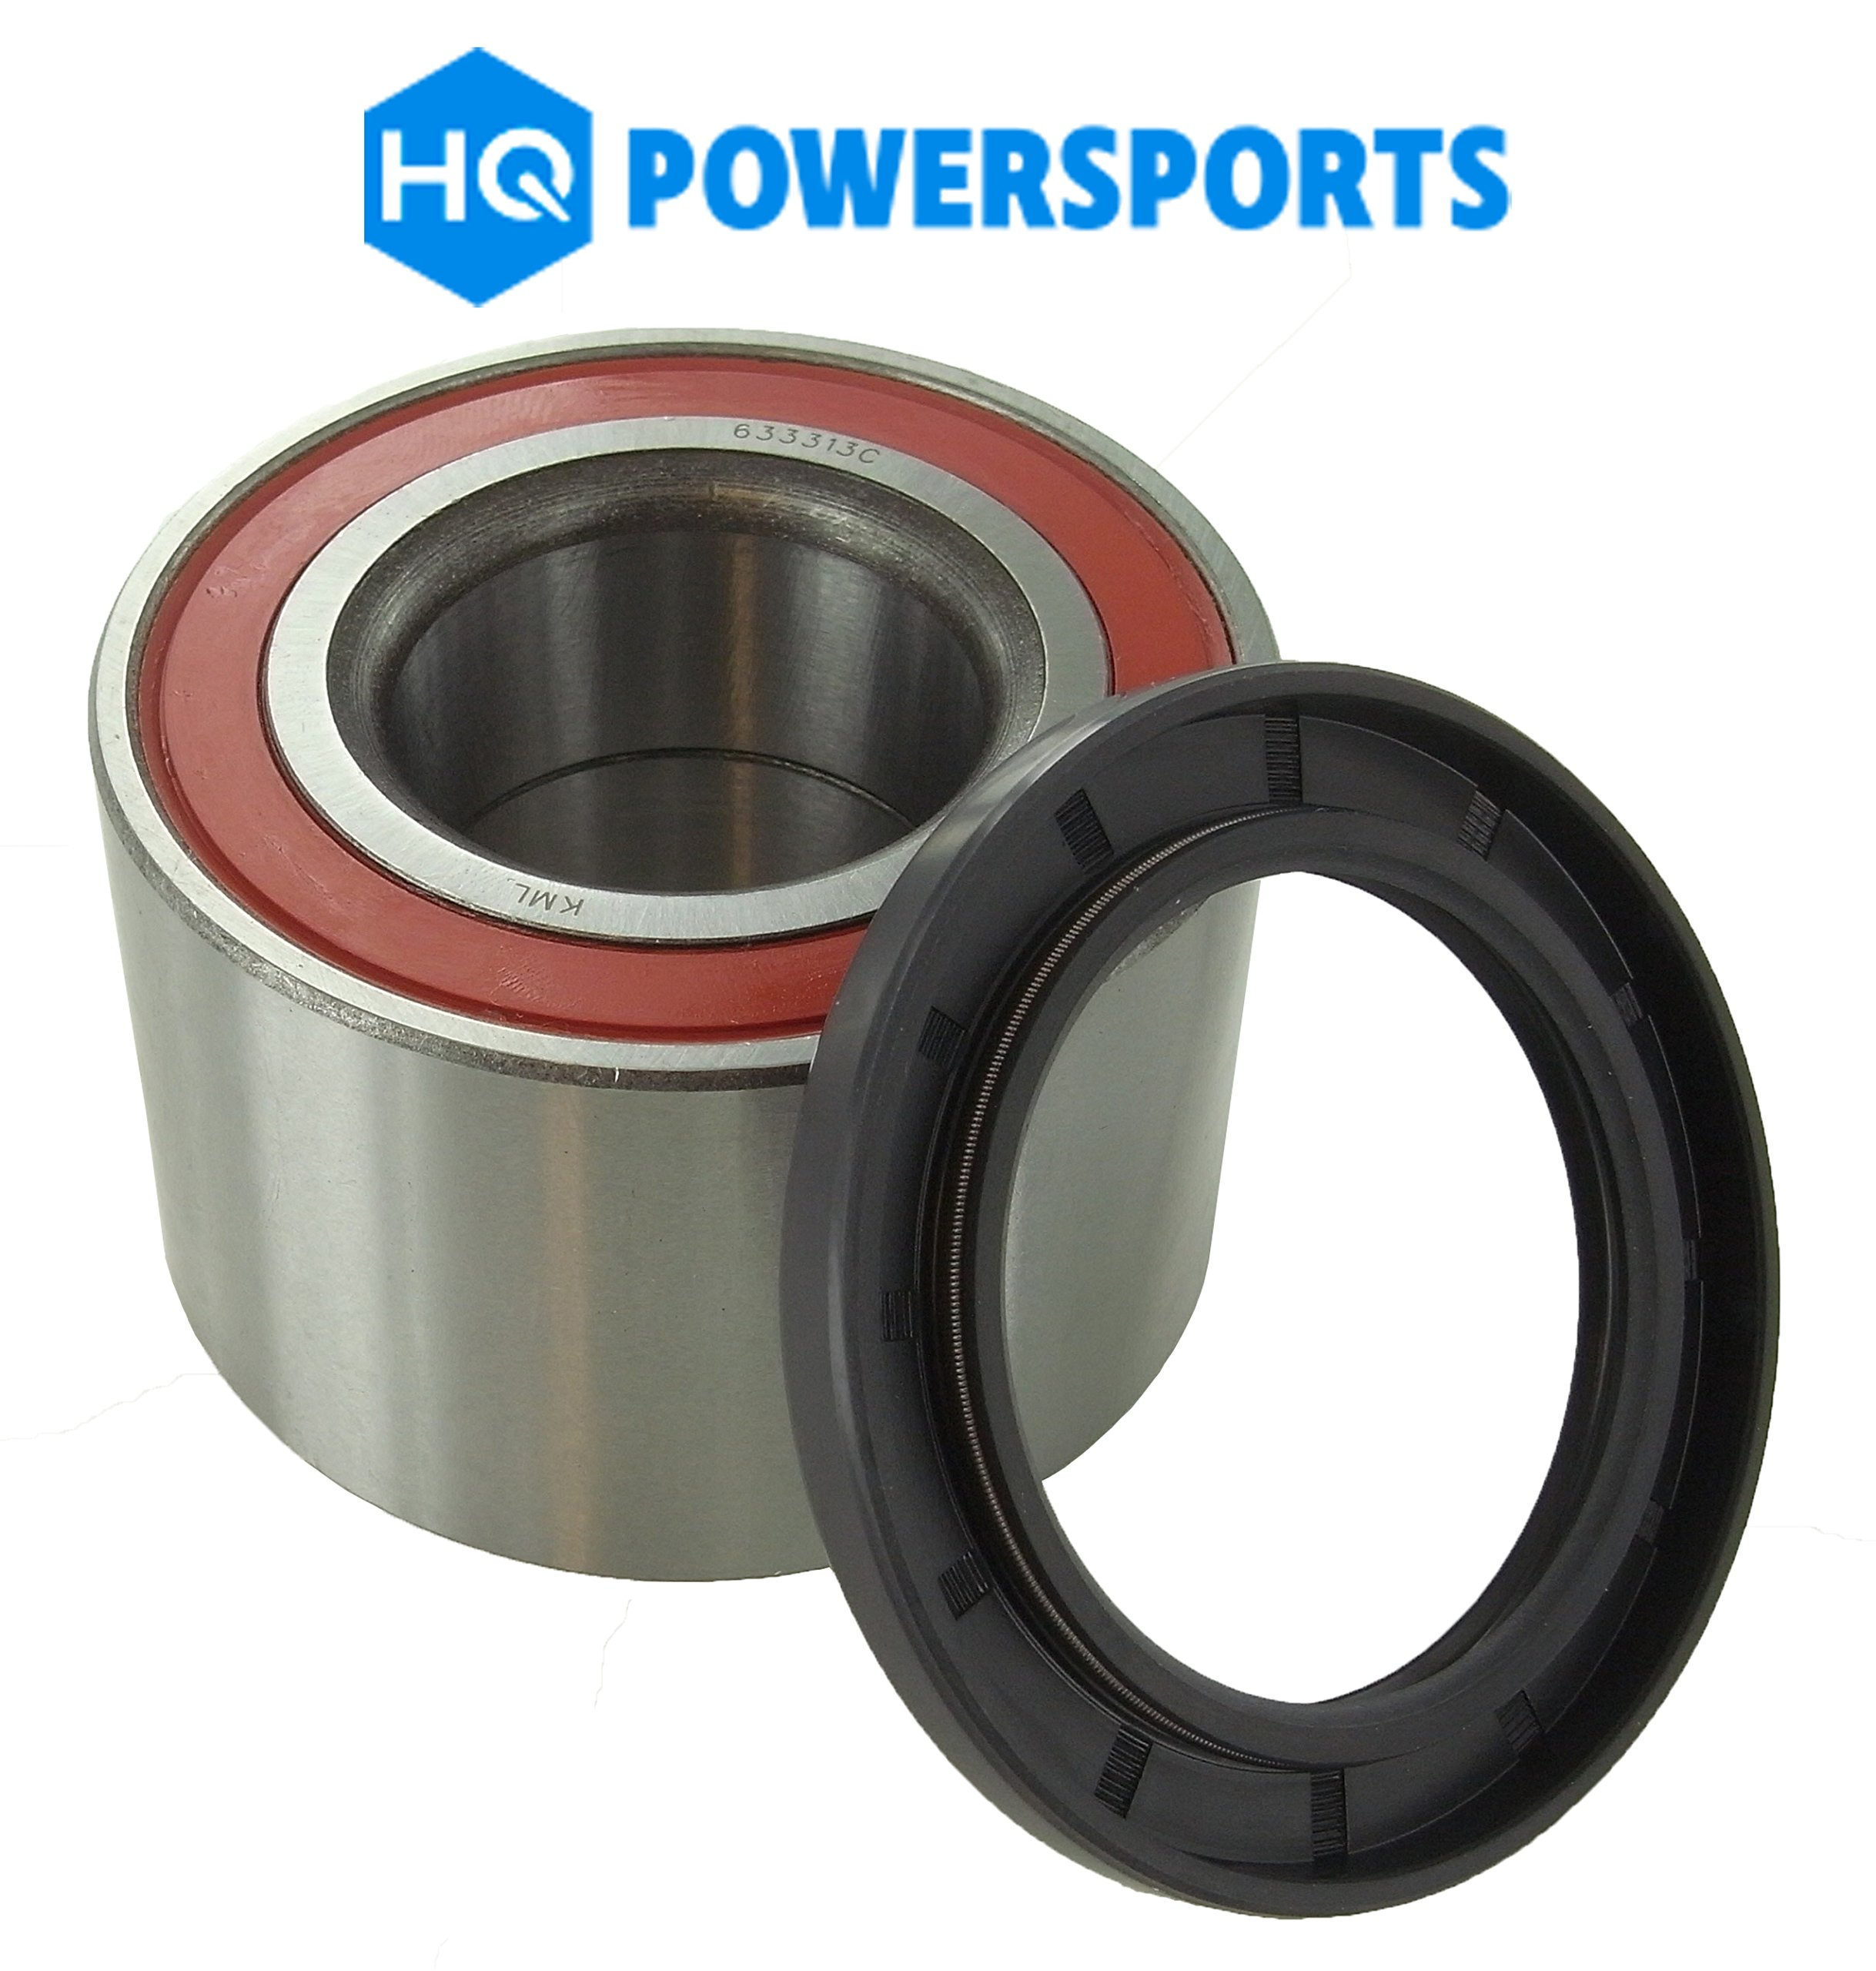 HQ Powersports Front Wheel Bearings Can-Am Outlander 1000 XMR 1000cc 2013 2014